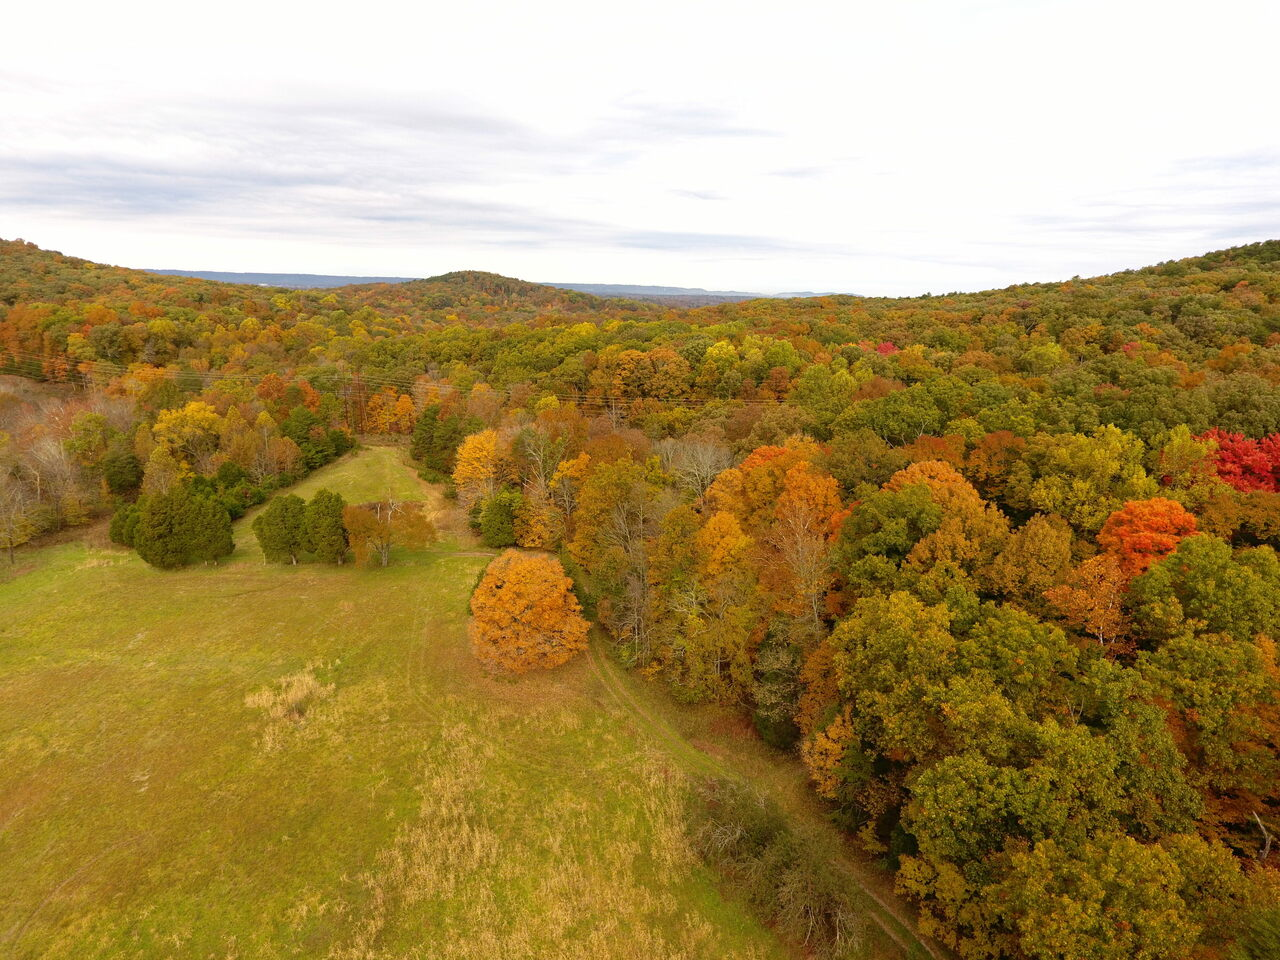 The pipeline threatens part of the Bernheim Research Forest.